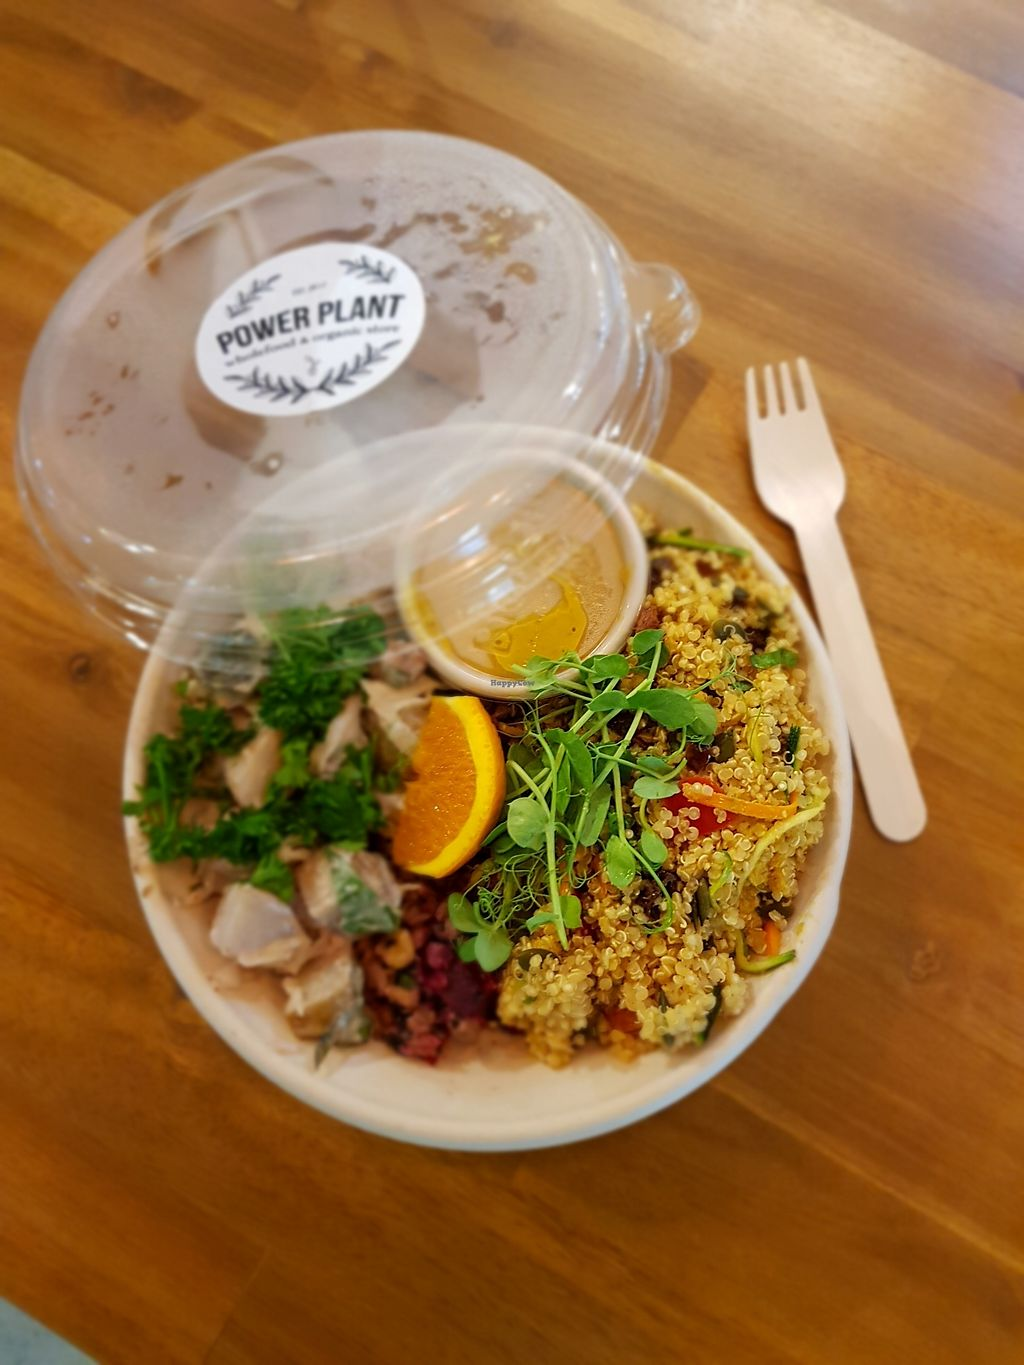 """Photo of Power Plant  by <a href=""""/members/profile/JasmineFuller"""">JasmineFuller</a> <br/>Trio salad bowl - three different salads and a sauce on the side all in one handy takeaway bowl <br/> December 12, 2017  - <a href='/contact/abuse/image/105547/334891'>Report</a>"""